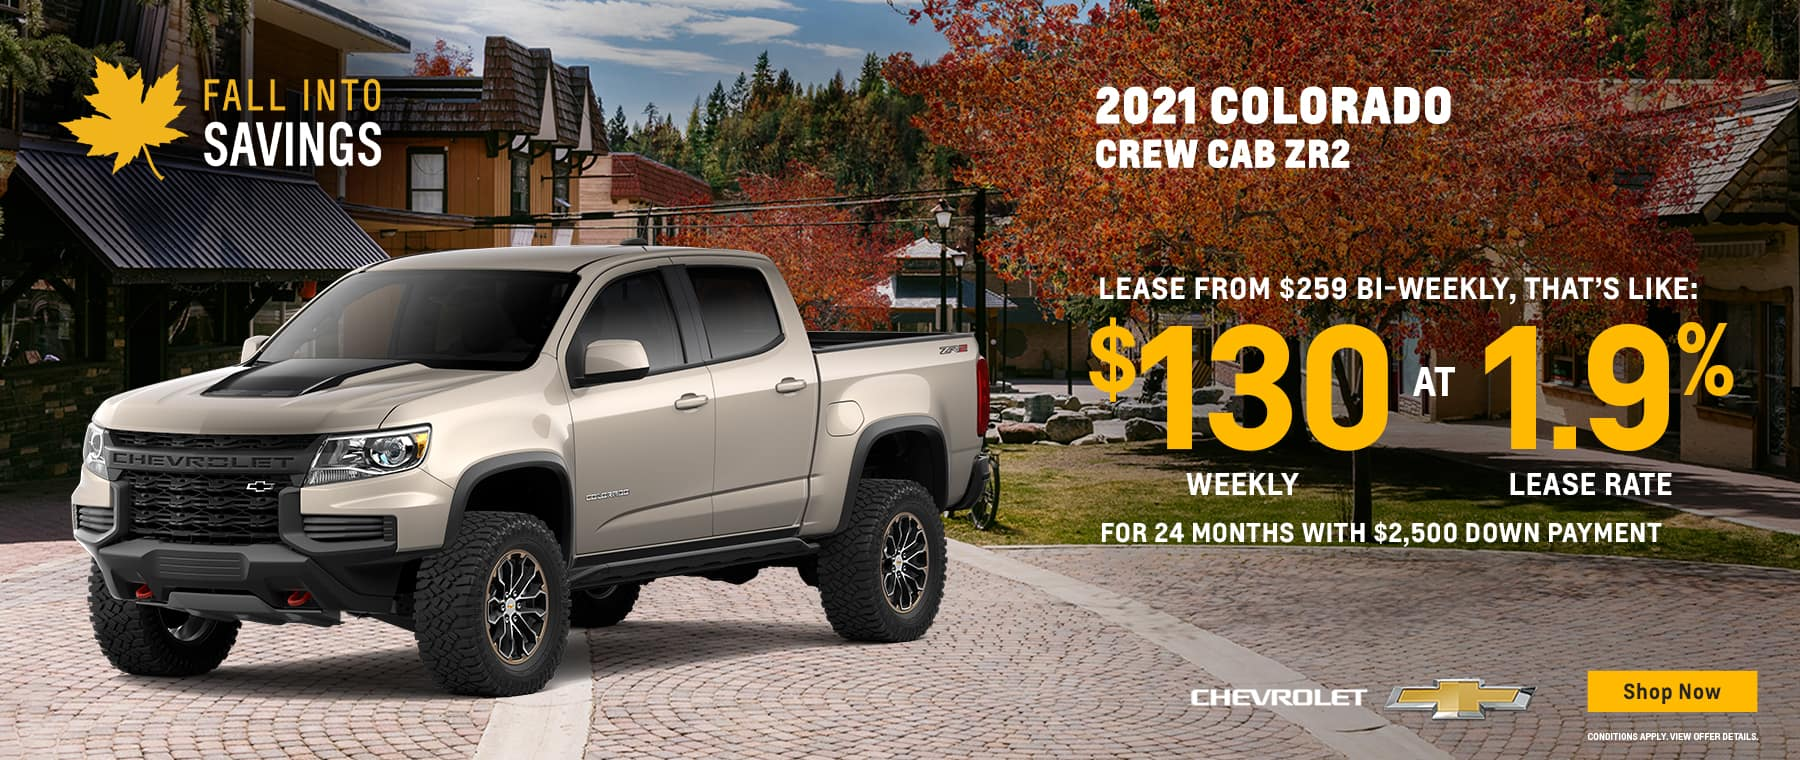 2020_OCT_WST_Chevy_T3_EN_1800x760_COLORADO